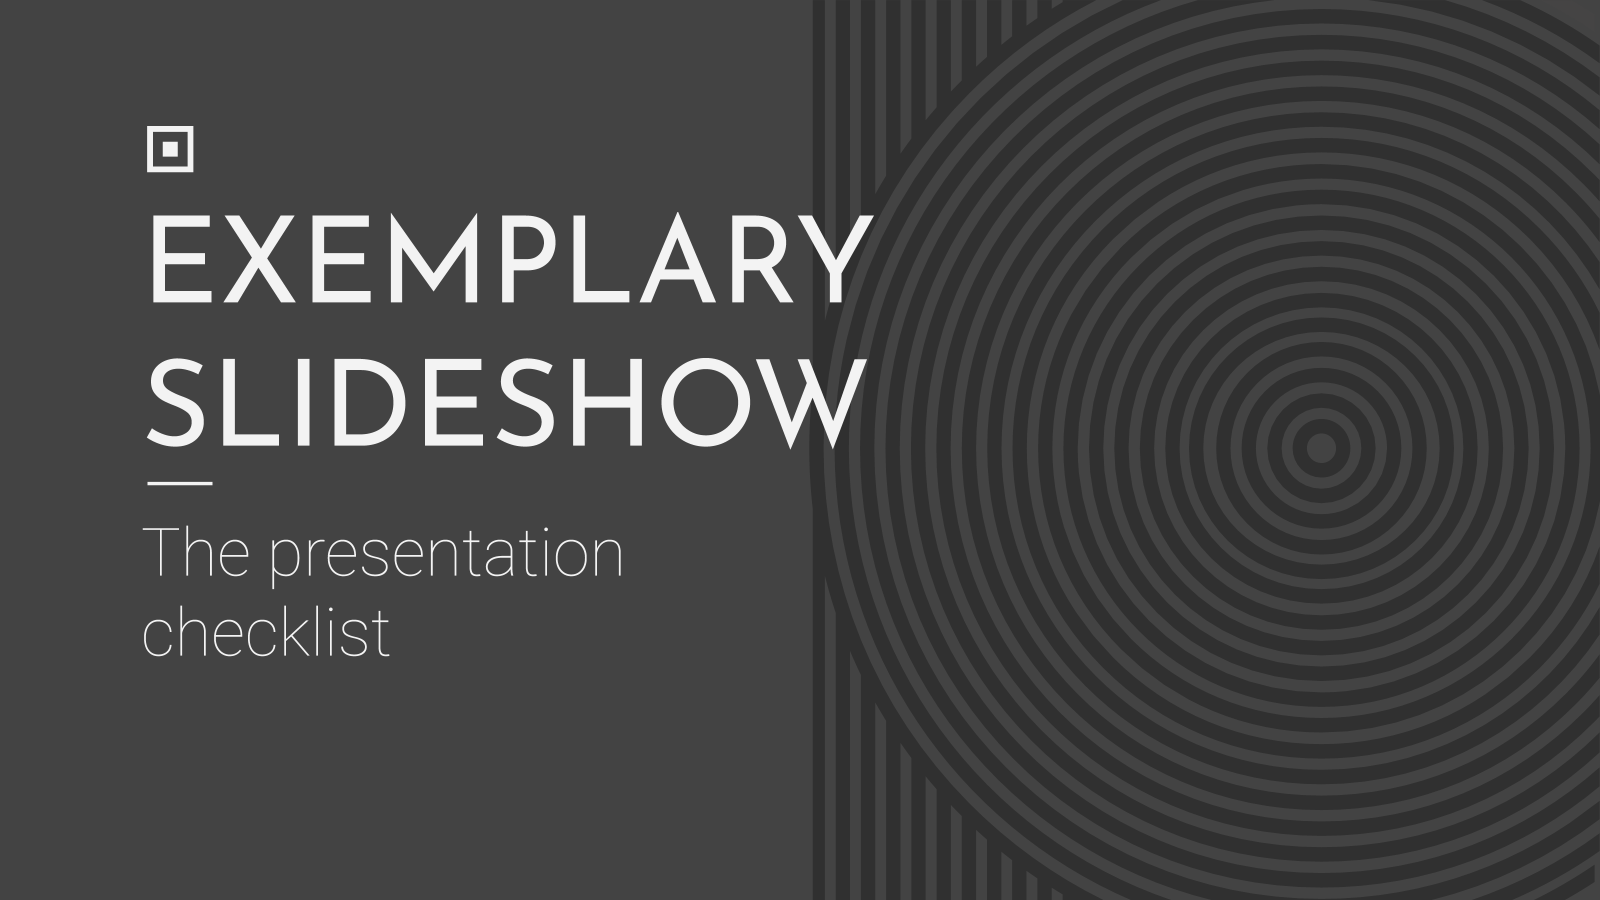 Exemplary Slideshow presentation template